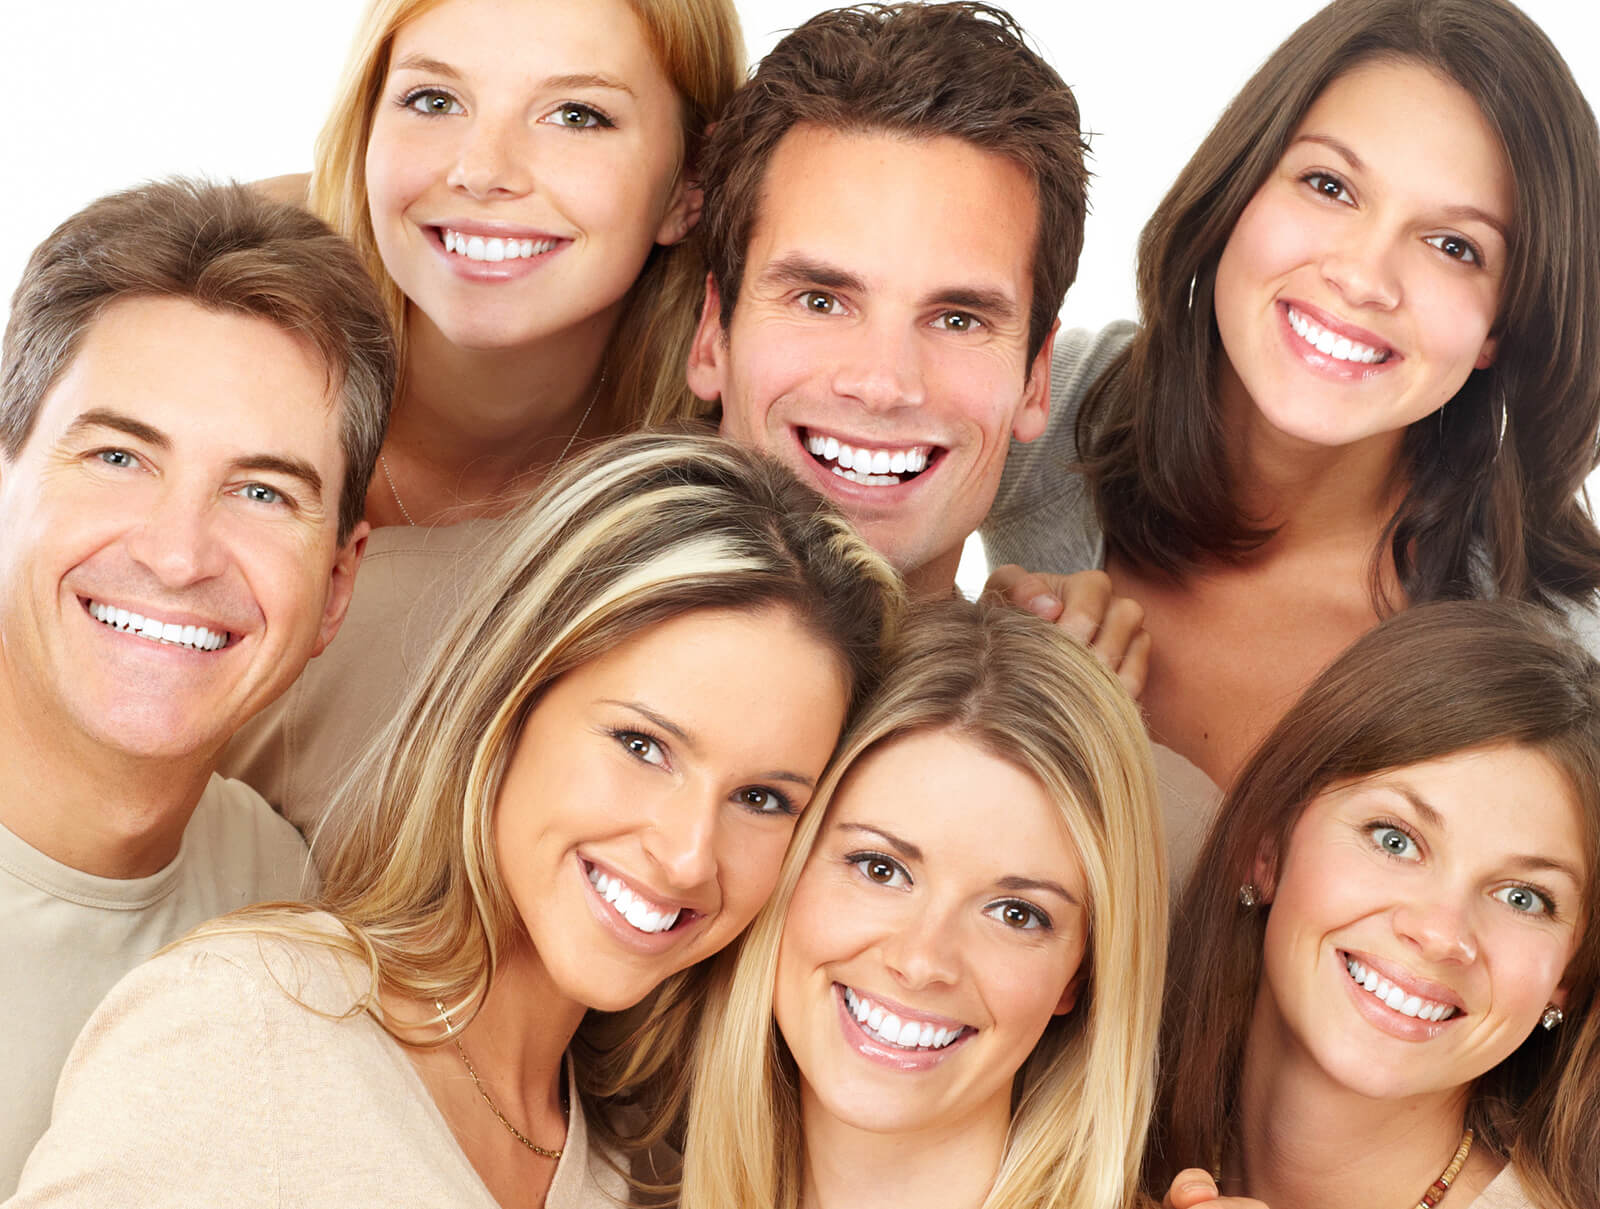 how much are dental implants